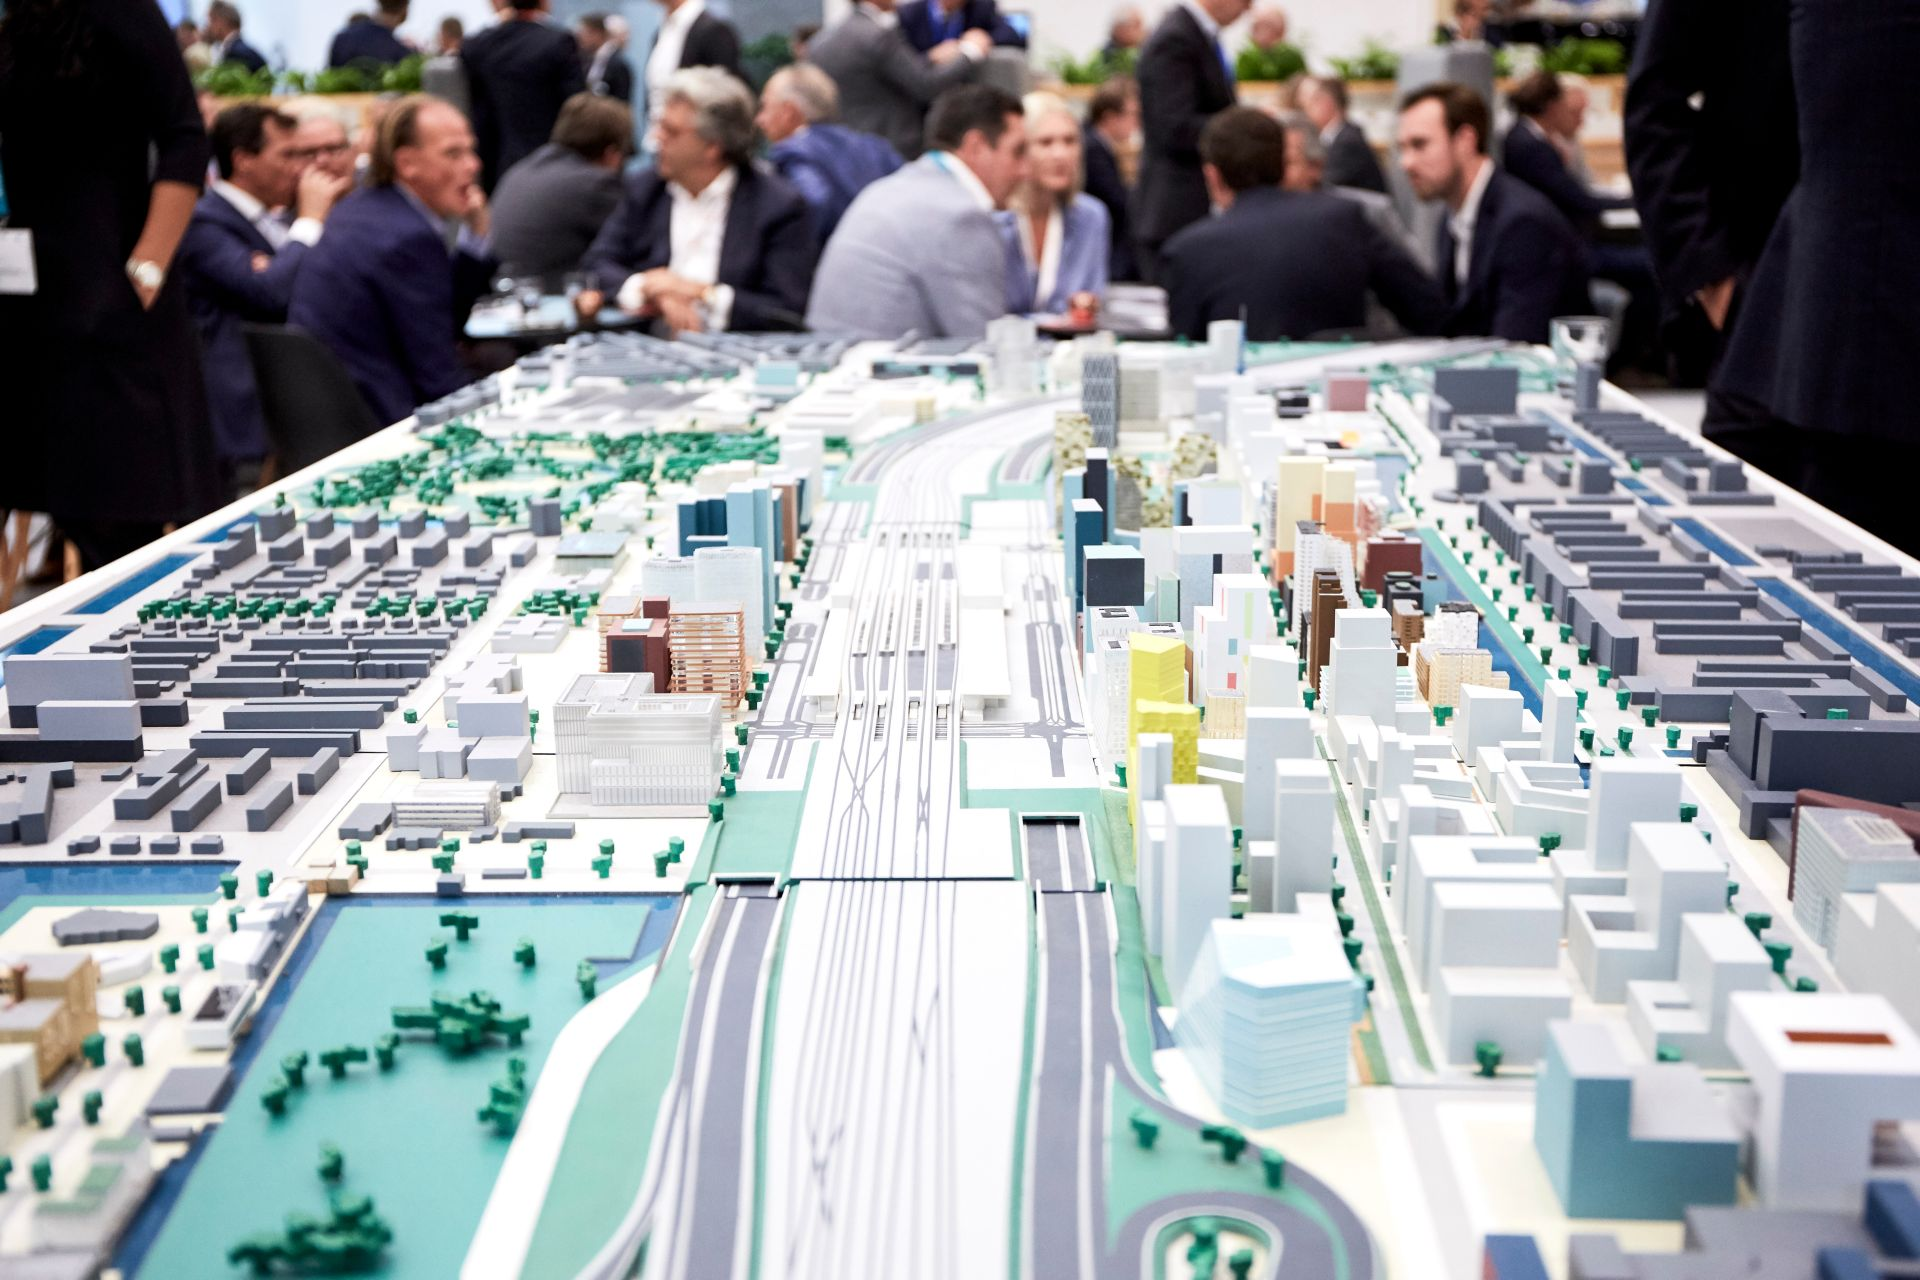 EXPO REAL Stadtmodell